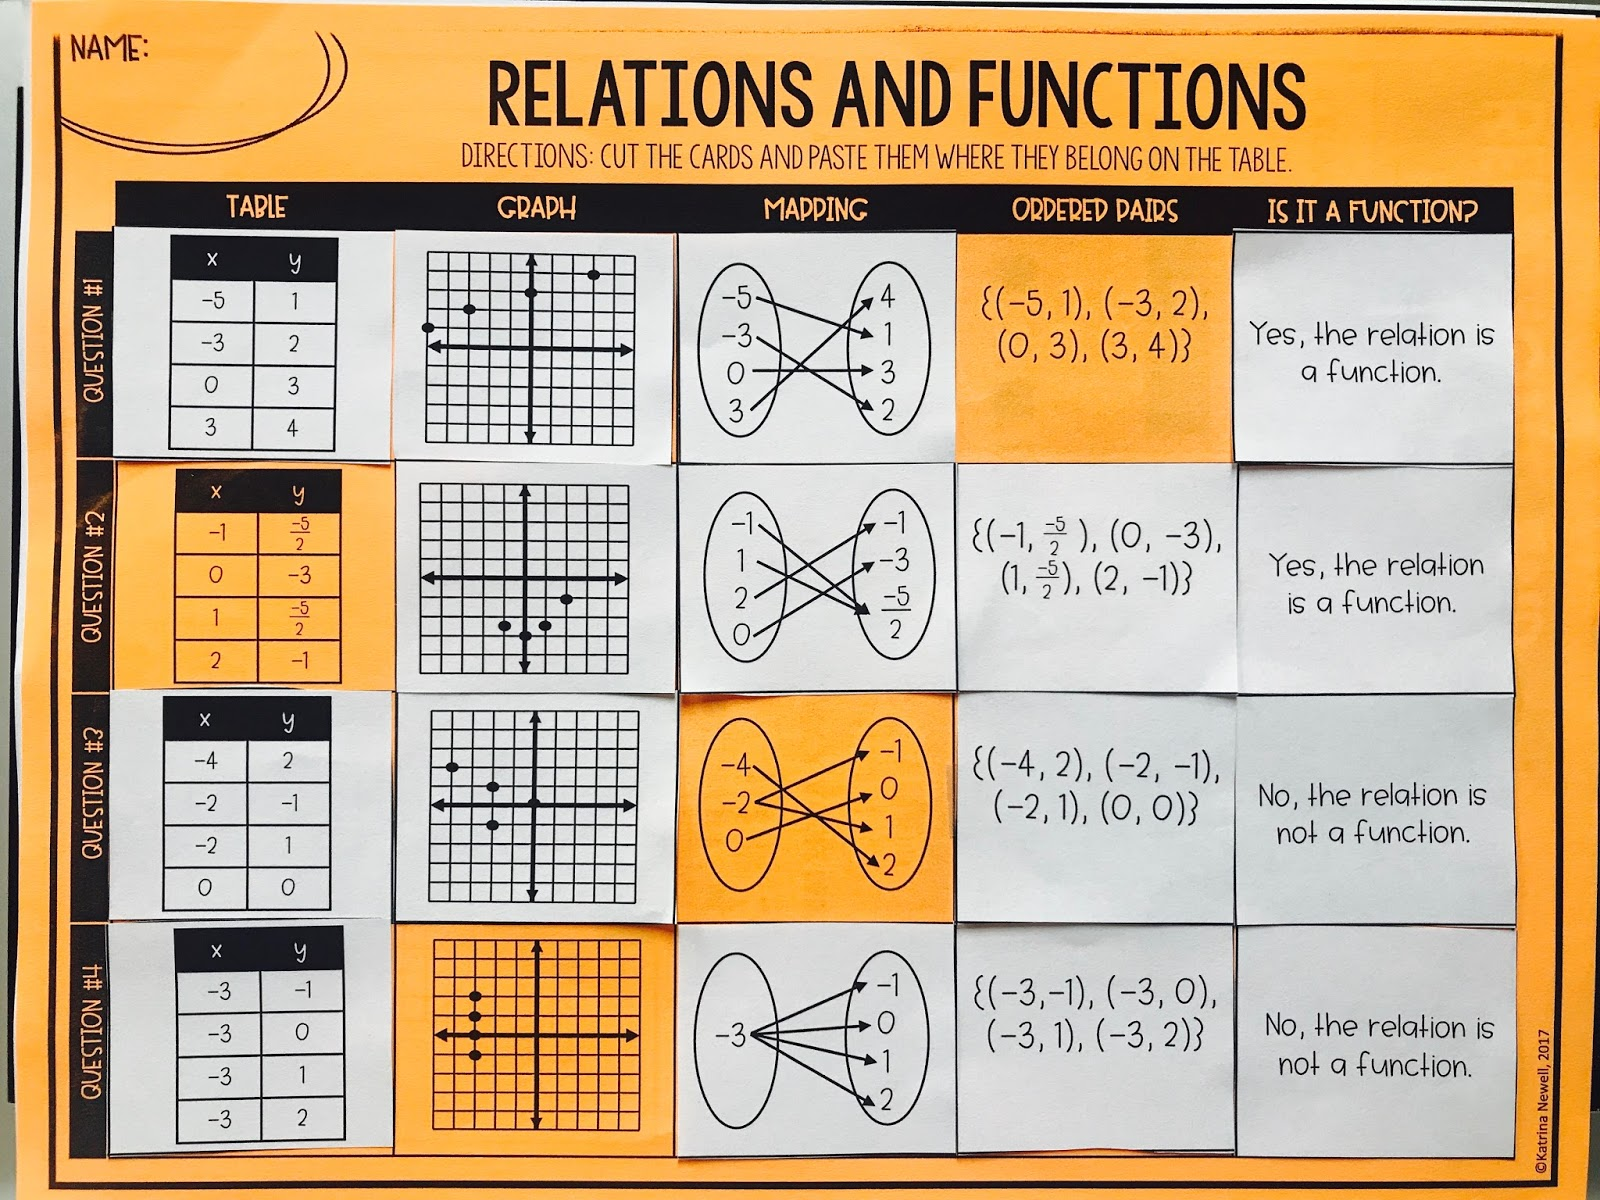 Relations And Functions Card Sort